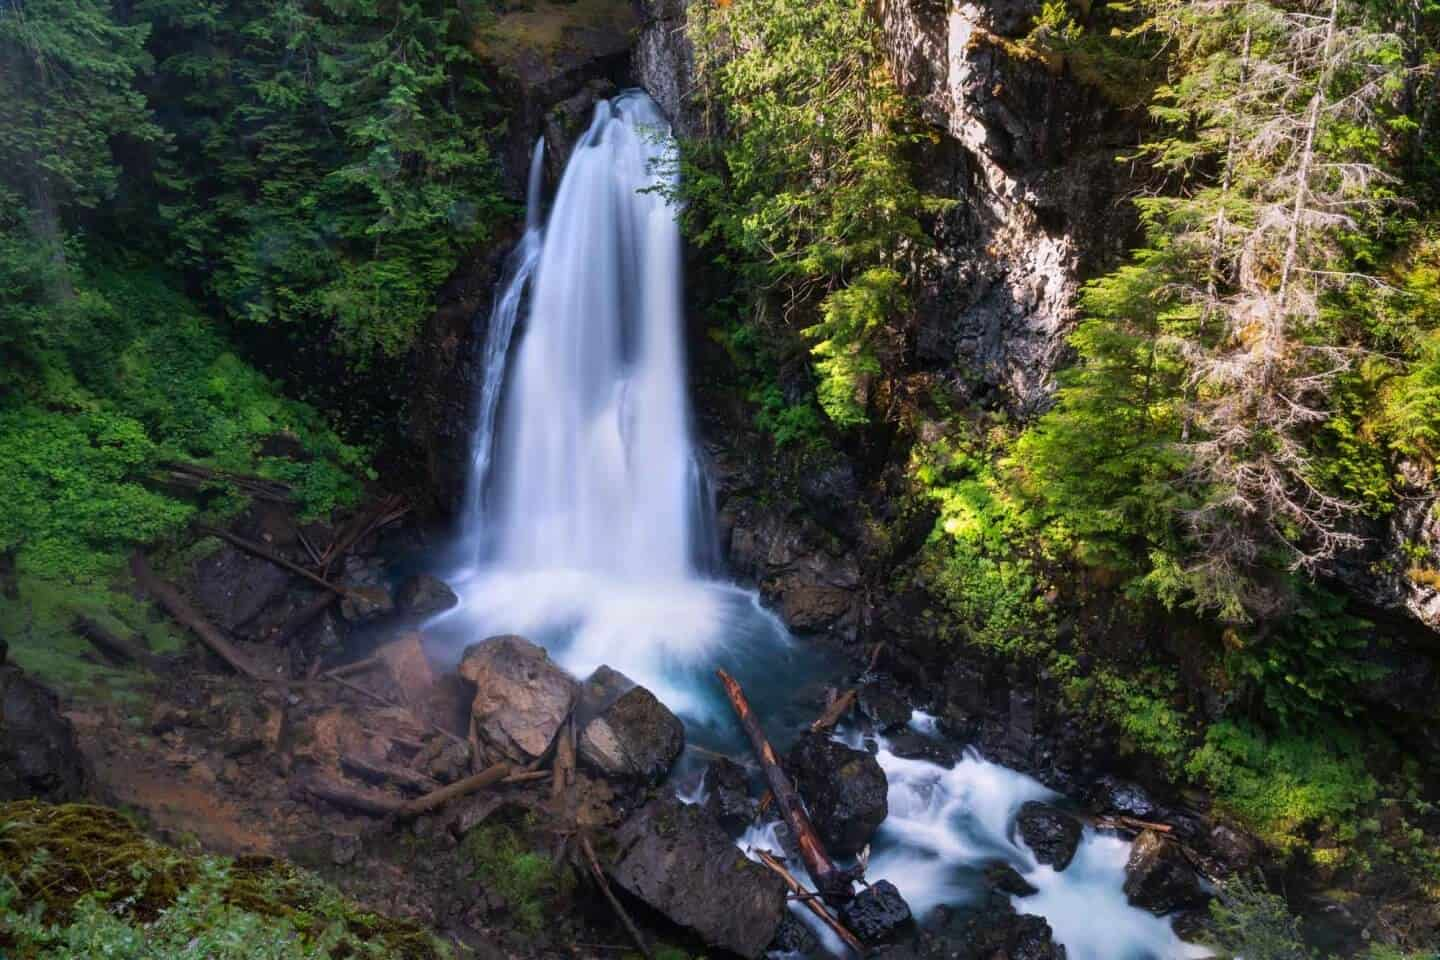 The large, misty Lady Falls is the first compelling reasons to take the Gold River Highway through Strathcona Provincial Park on a Vancouver Island road trip.